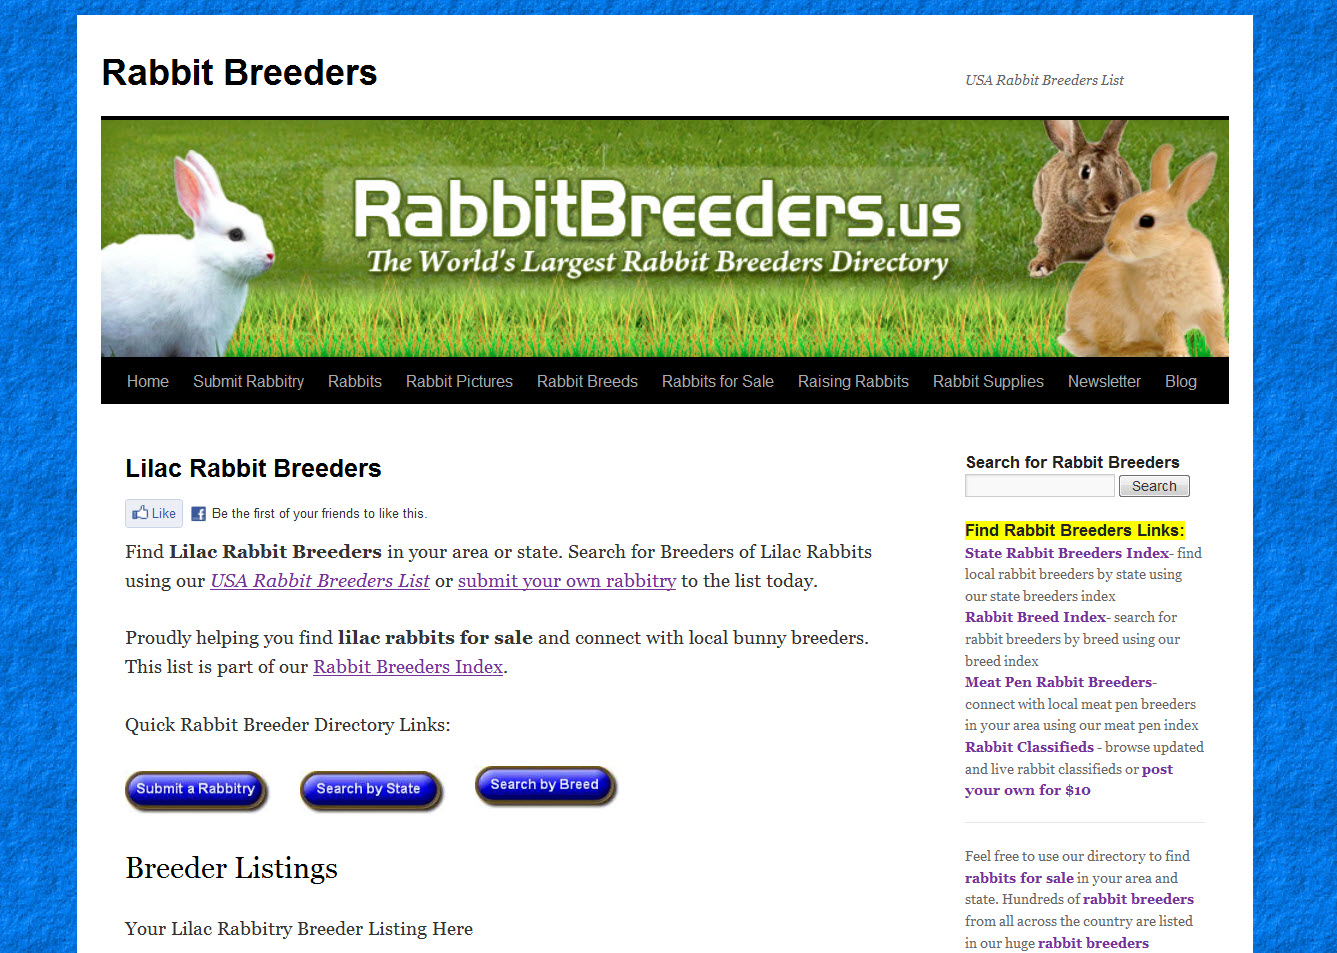 Lilac Rabbit Breeders